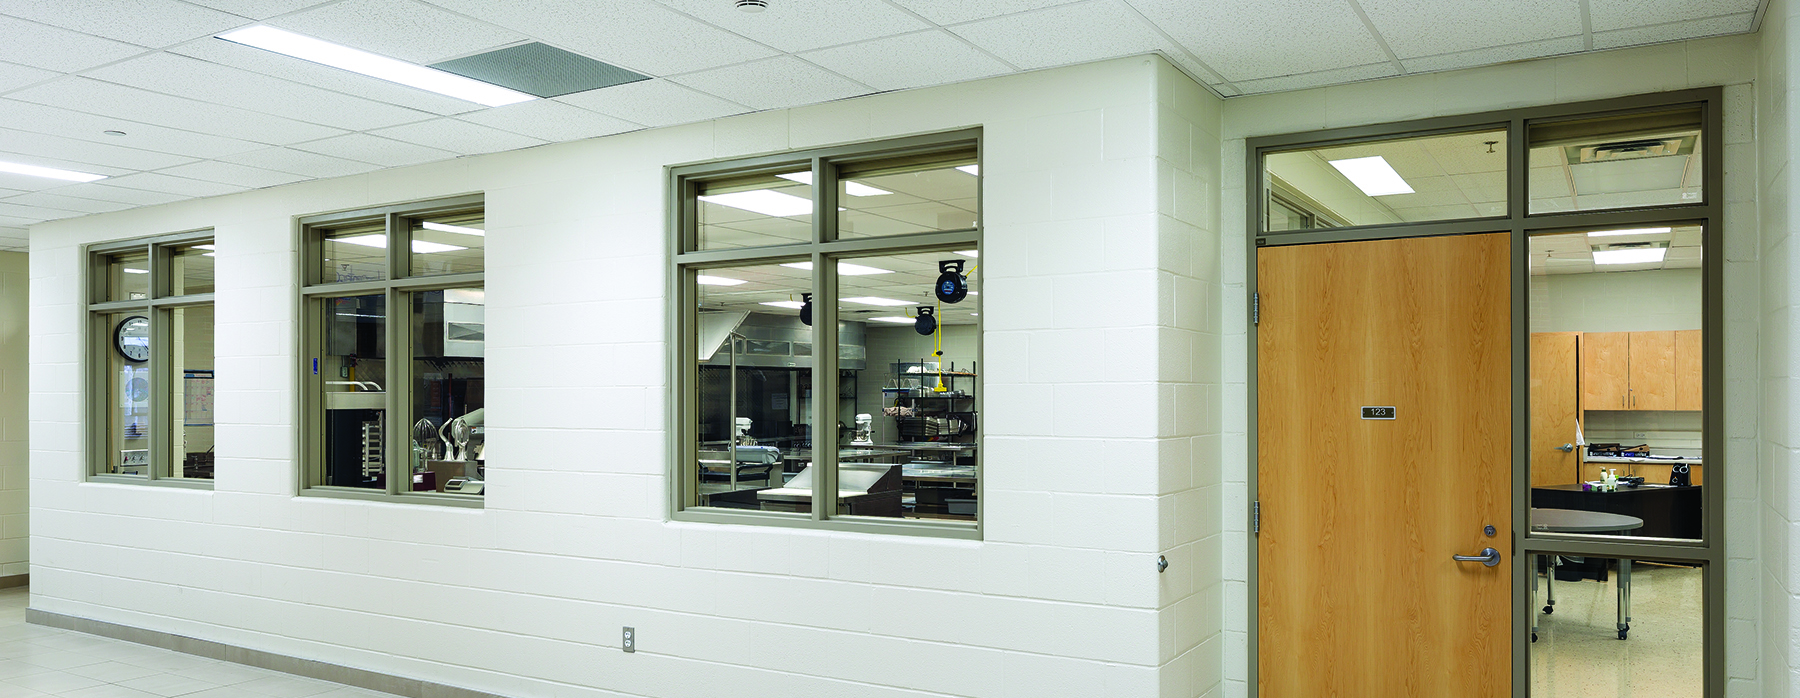 WireLite® NT - Fire-Rated, Safety-Rated Wired Glass, Surface-Applied ...